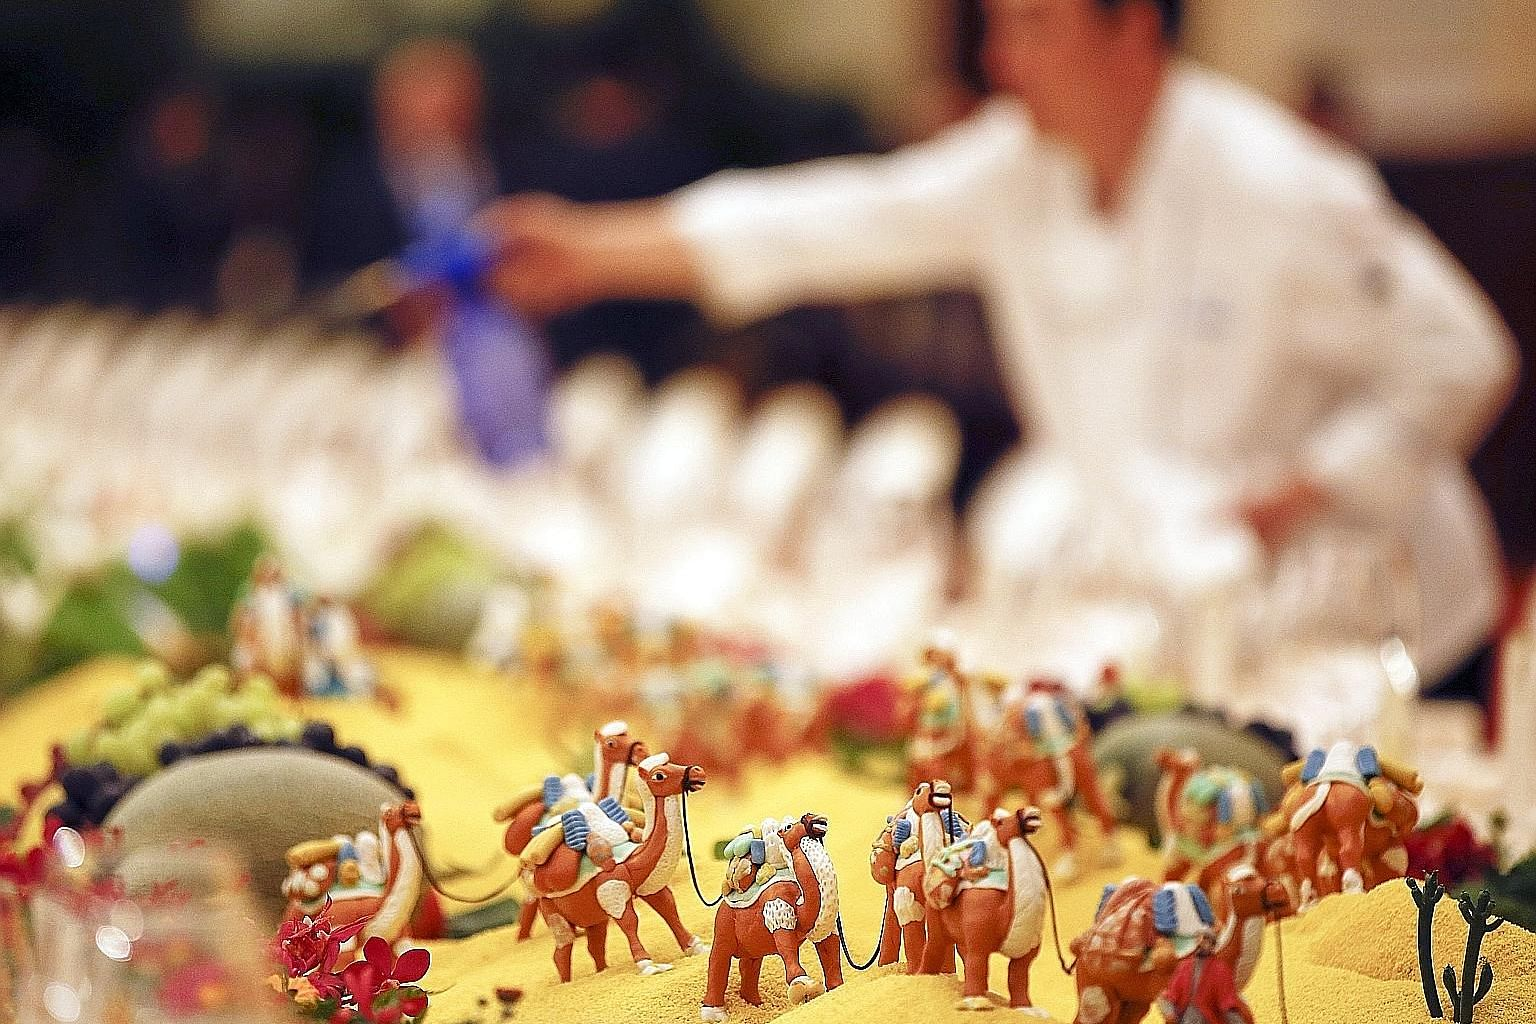 """The set-up at Beijing's Belt and Road Forum welcome banquet this week included food sculptures of camels that plied the Silk Road. At the forum, President Xi Jinping said China would """"foster a new type of international relations"""" based on mutual coop"""